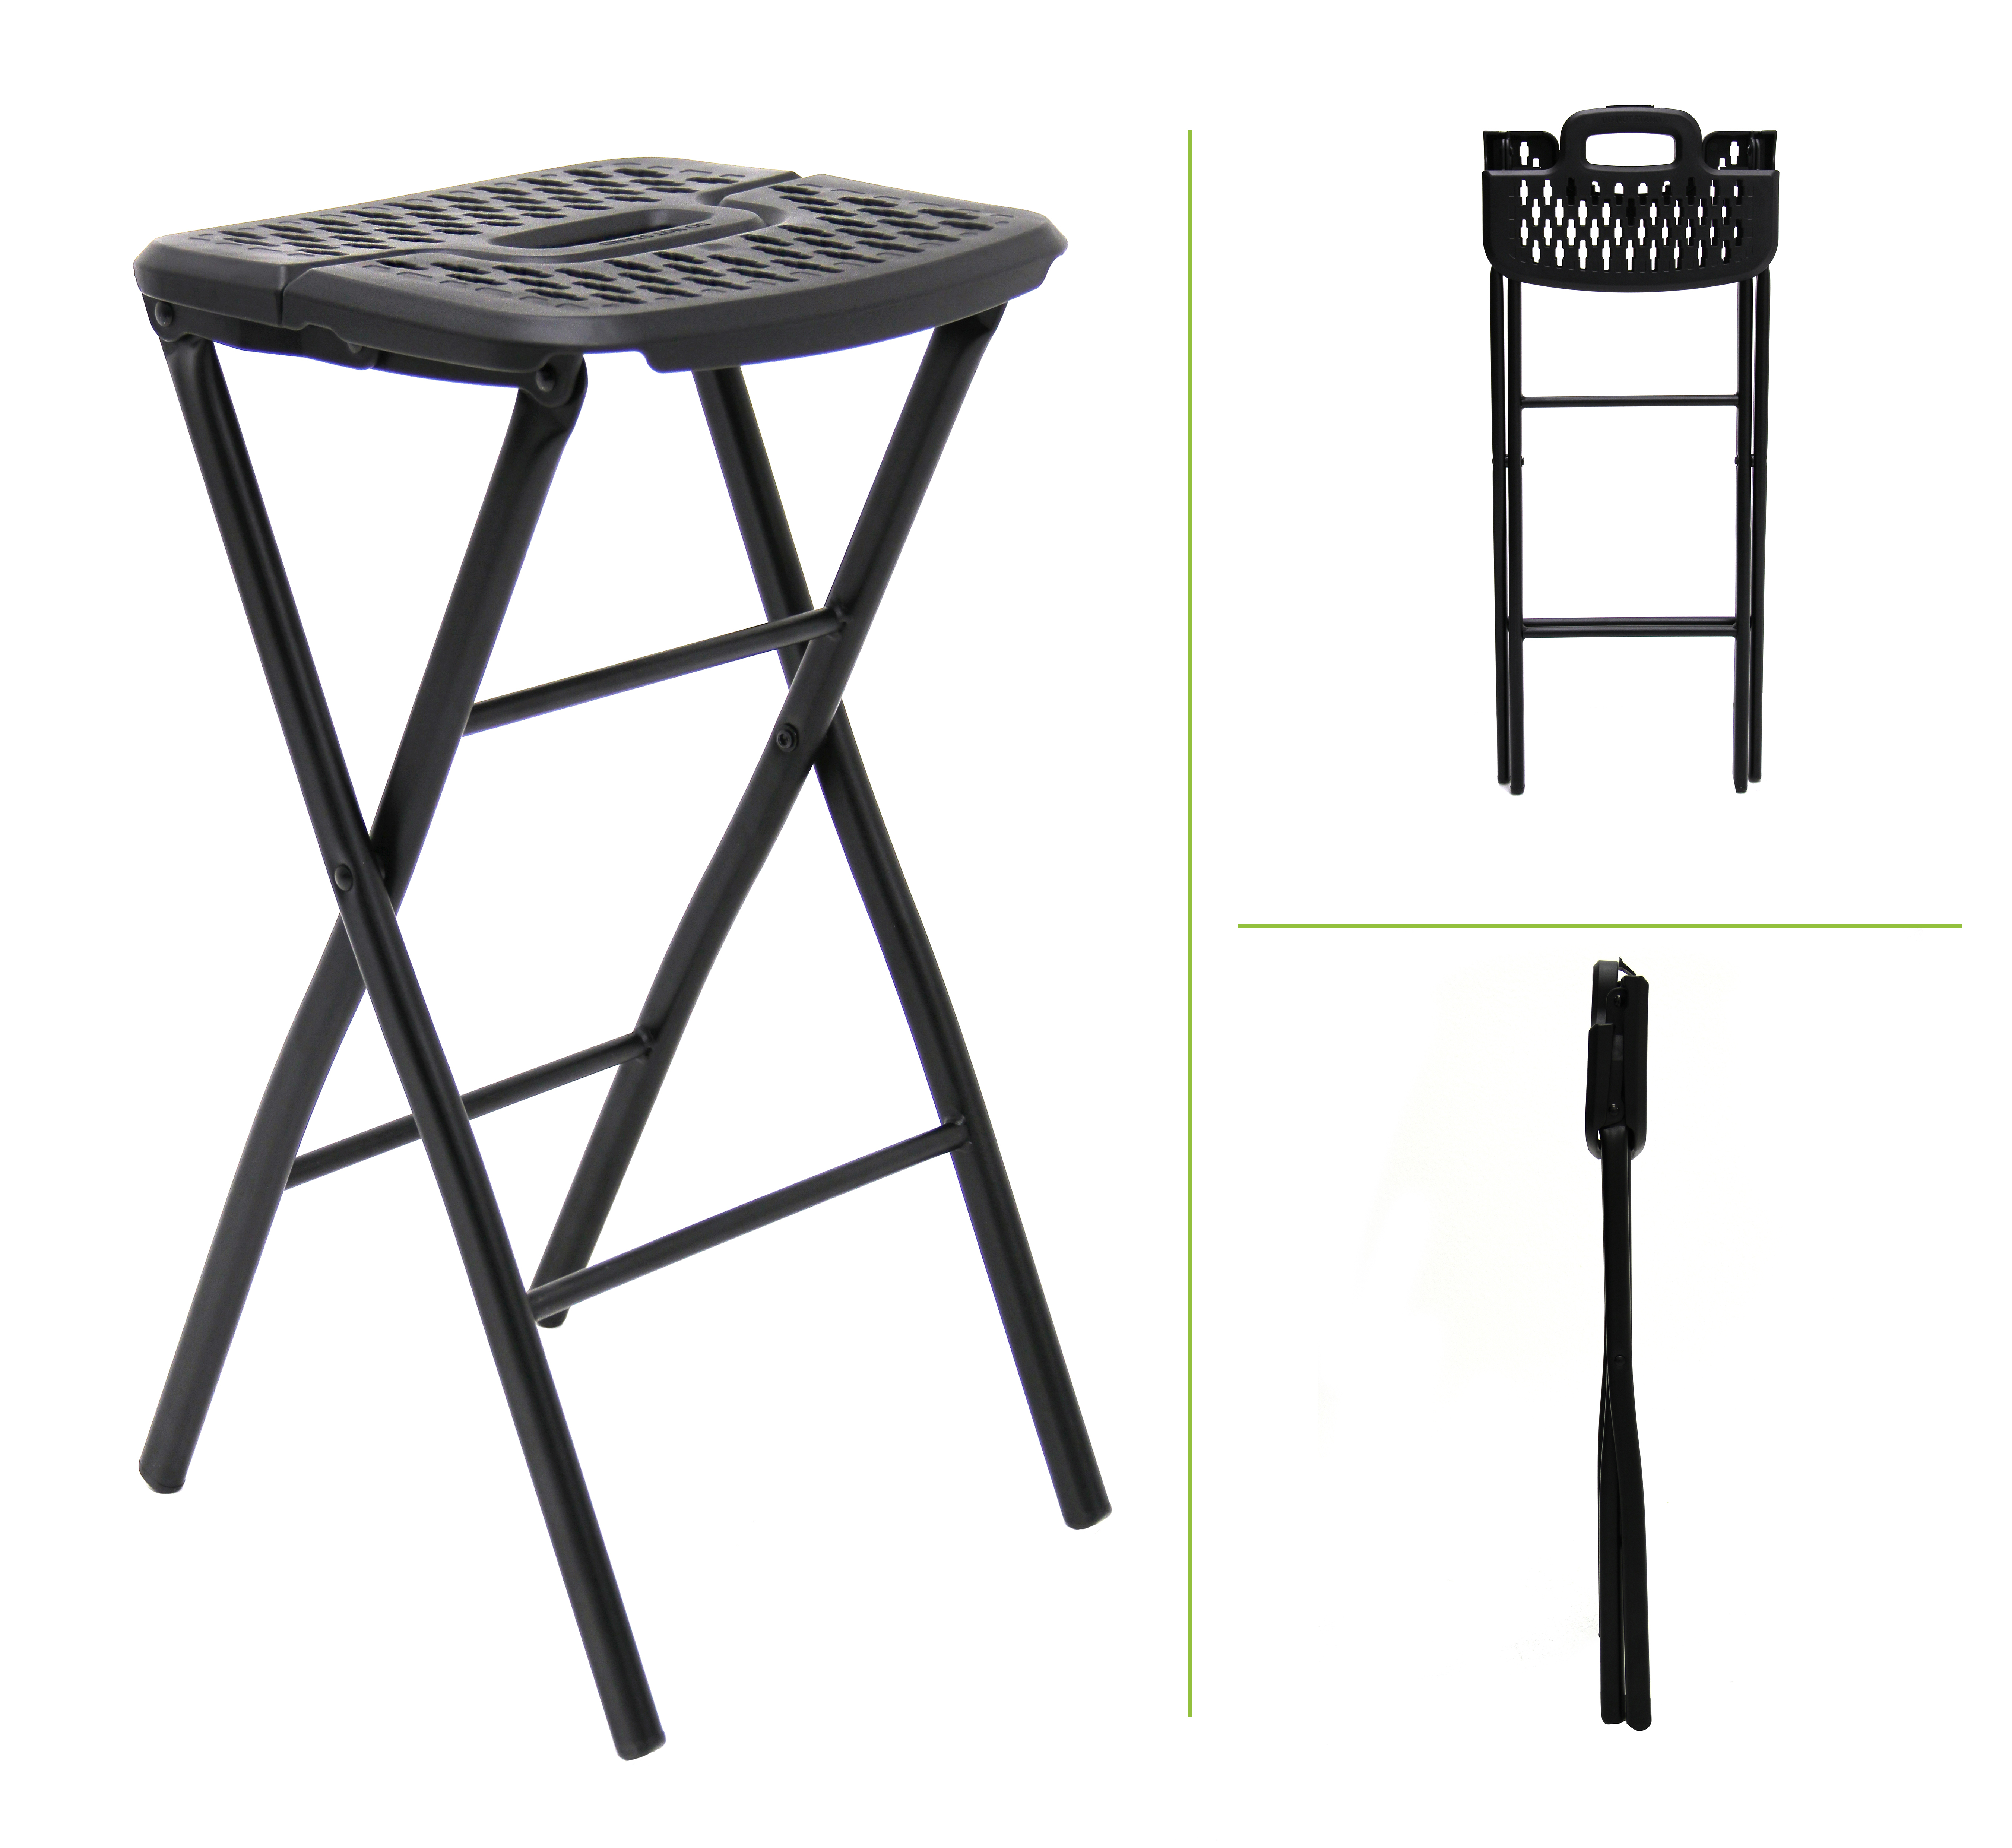 MityLite s New Flex e Folding Stool Just in Time for Holiday